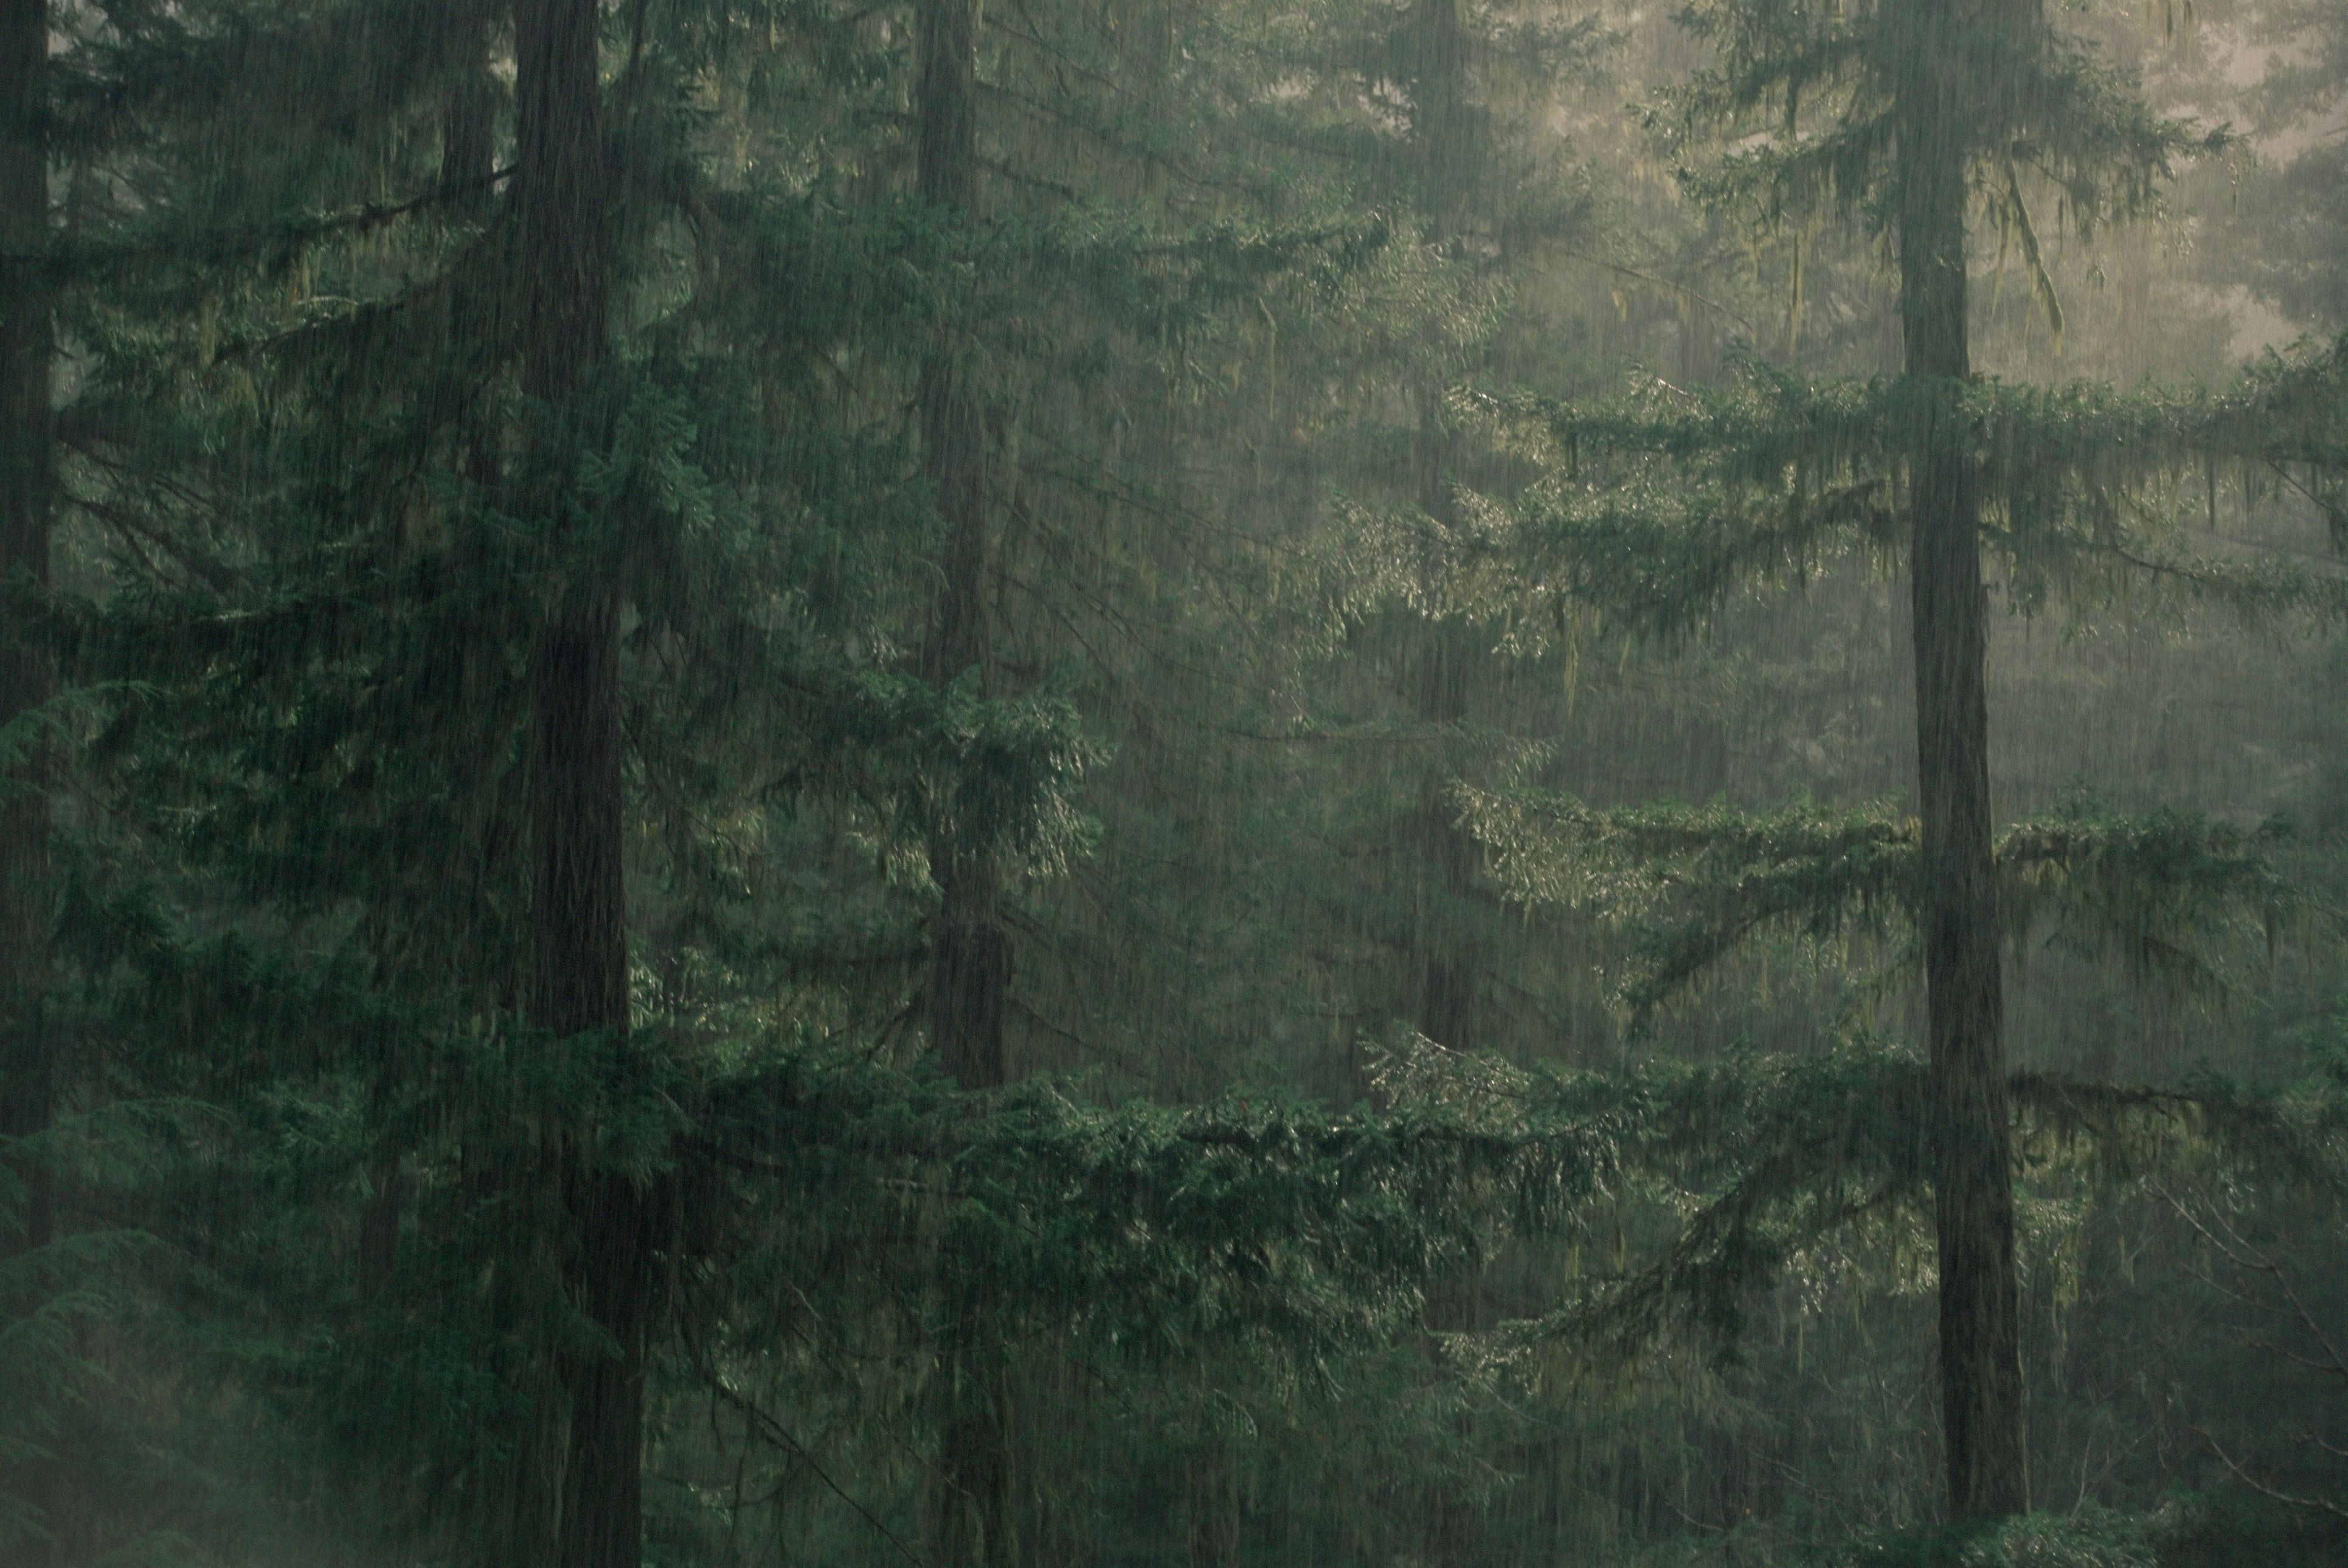 Fir trees in rain, Oregon, United States of America, North America